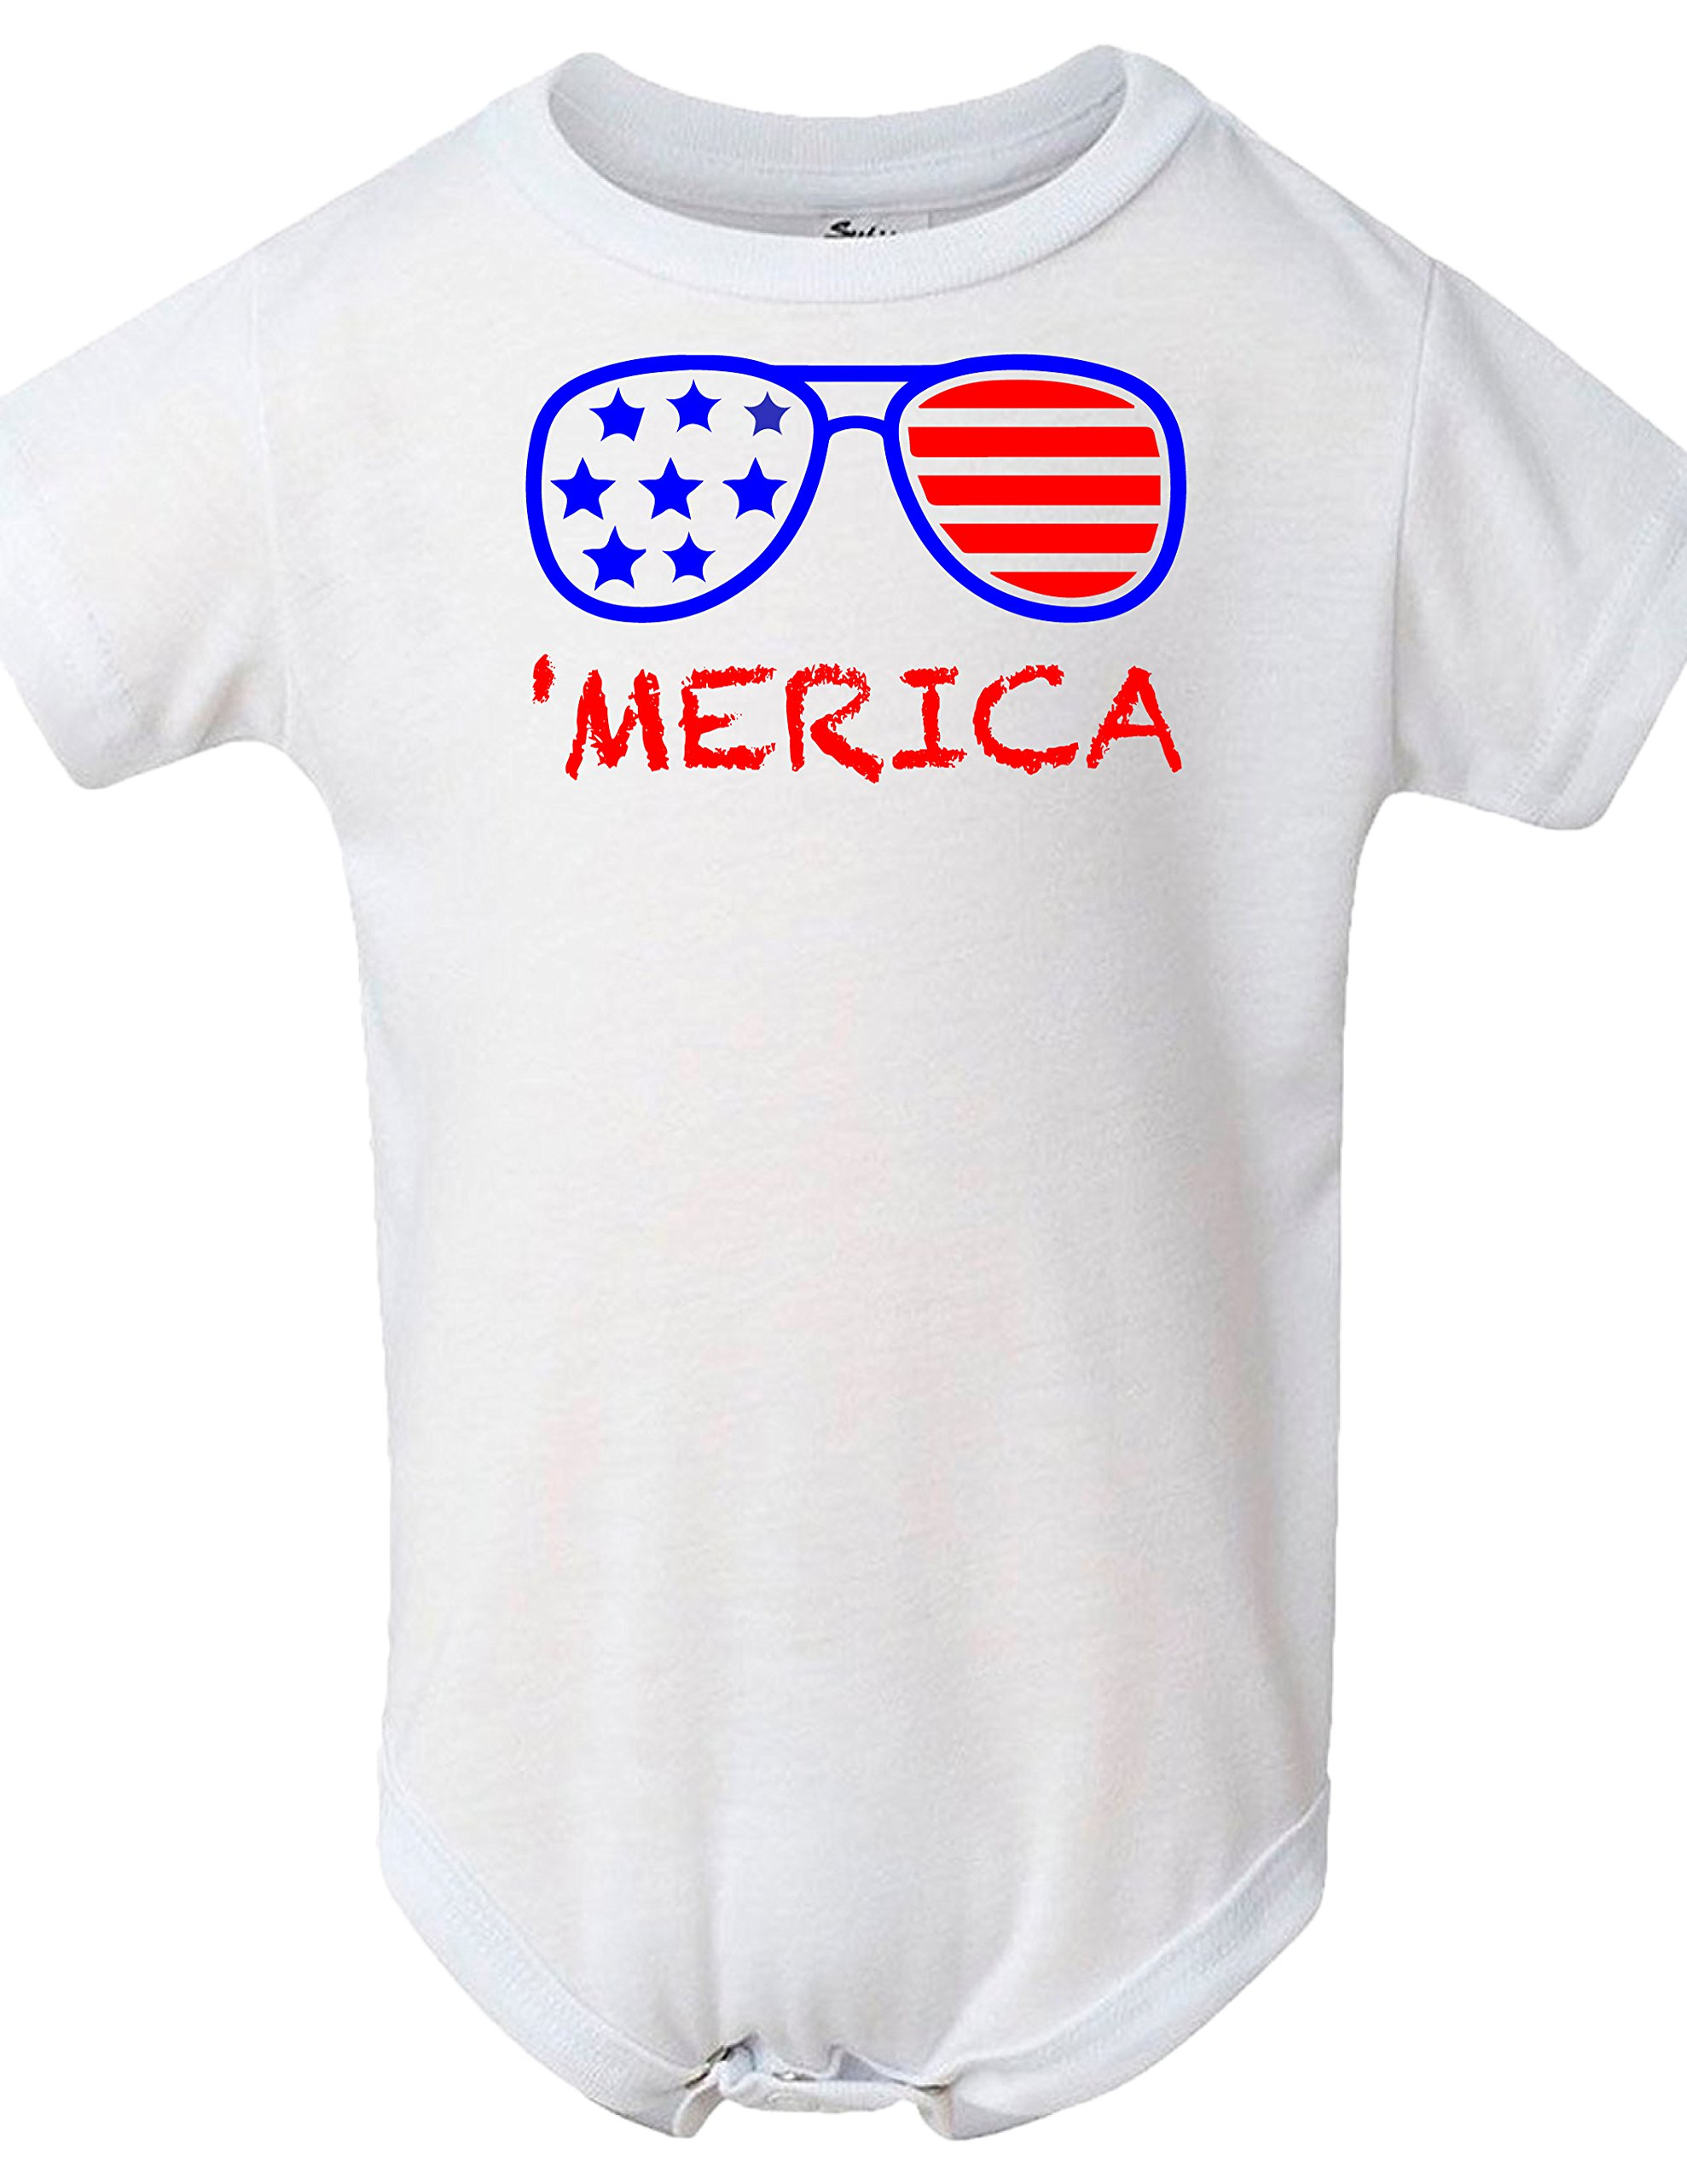 BLAKENREAG America Sunglasses Patriotic 4th of July Funny Baby Bodysuit Baby Boy Girl Clothes (6 Months) by BLAKENREAG